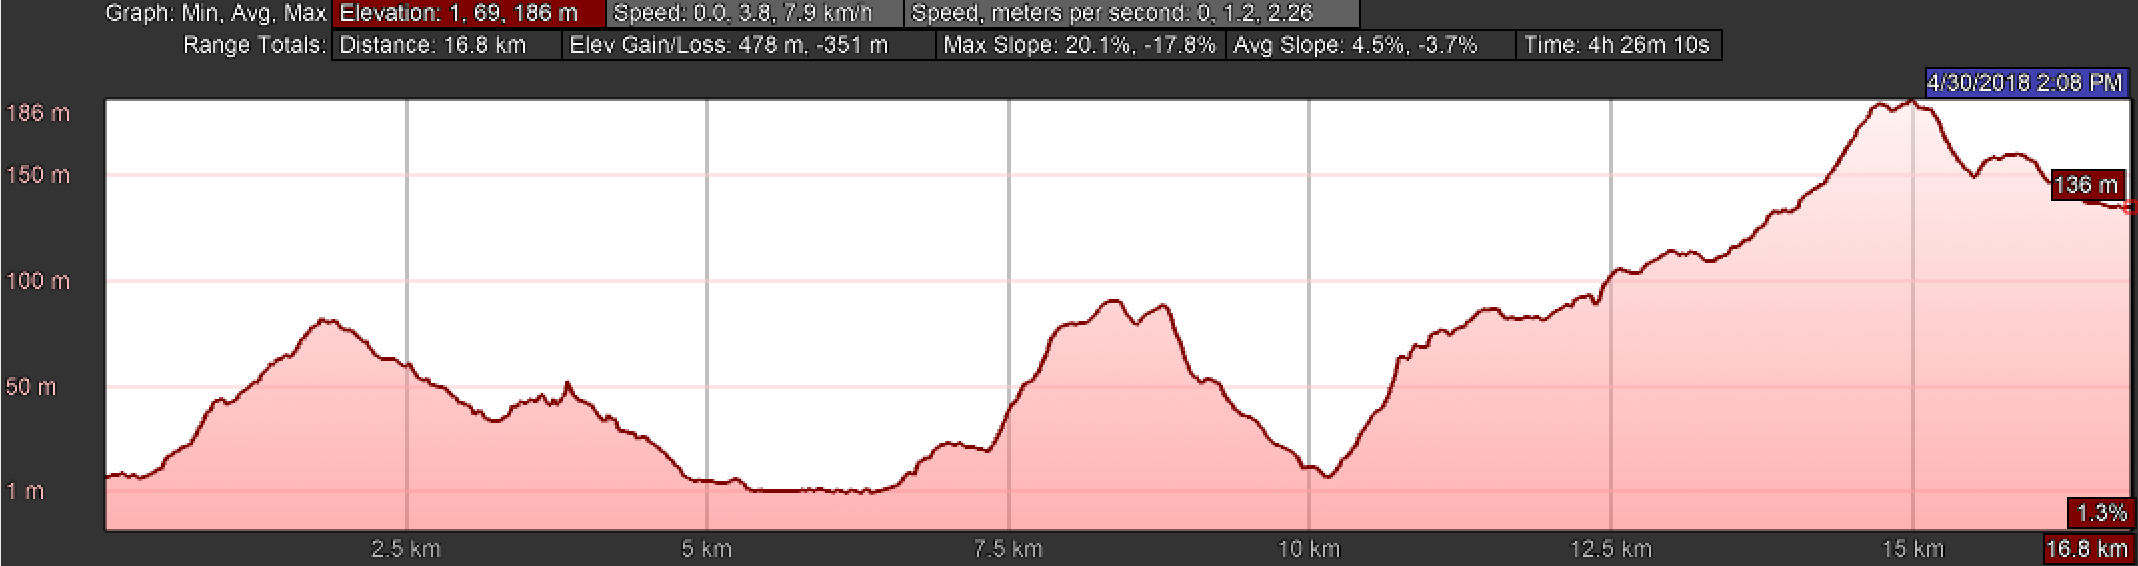 Elevation Profile Day One, Camino Inglés, La Coruña Arm, Part Two